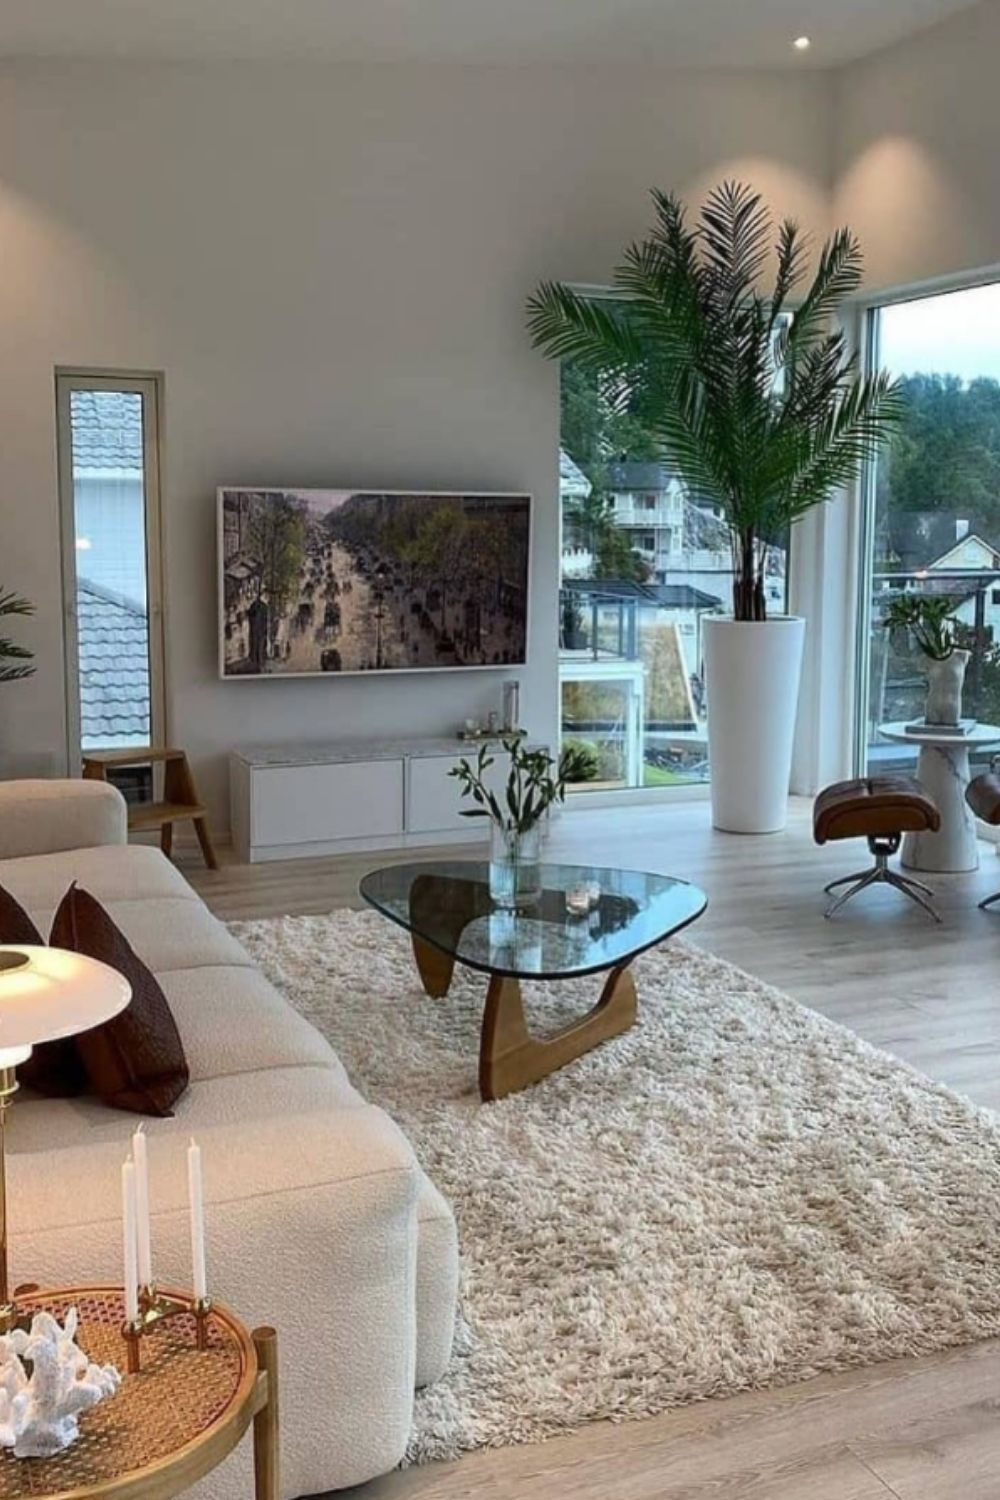 Home decoration of the living room design